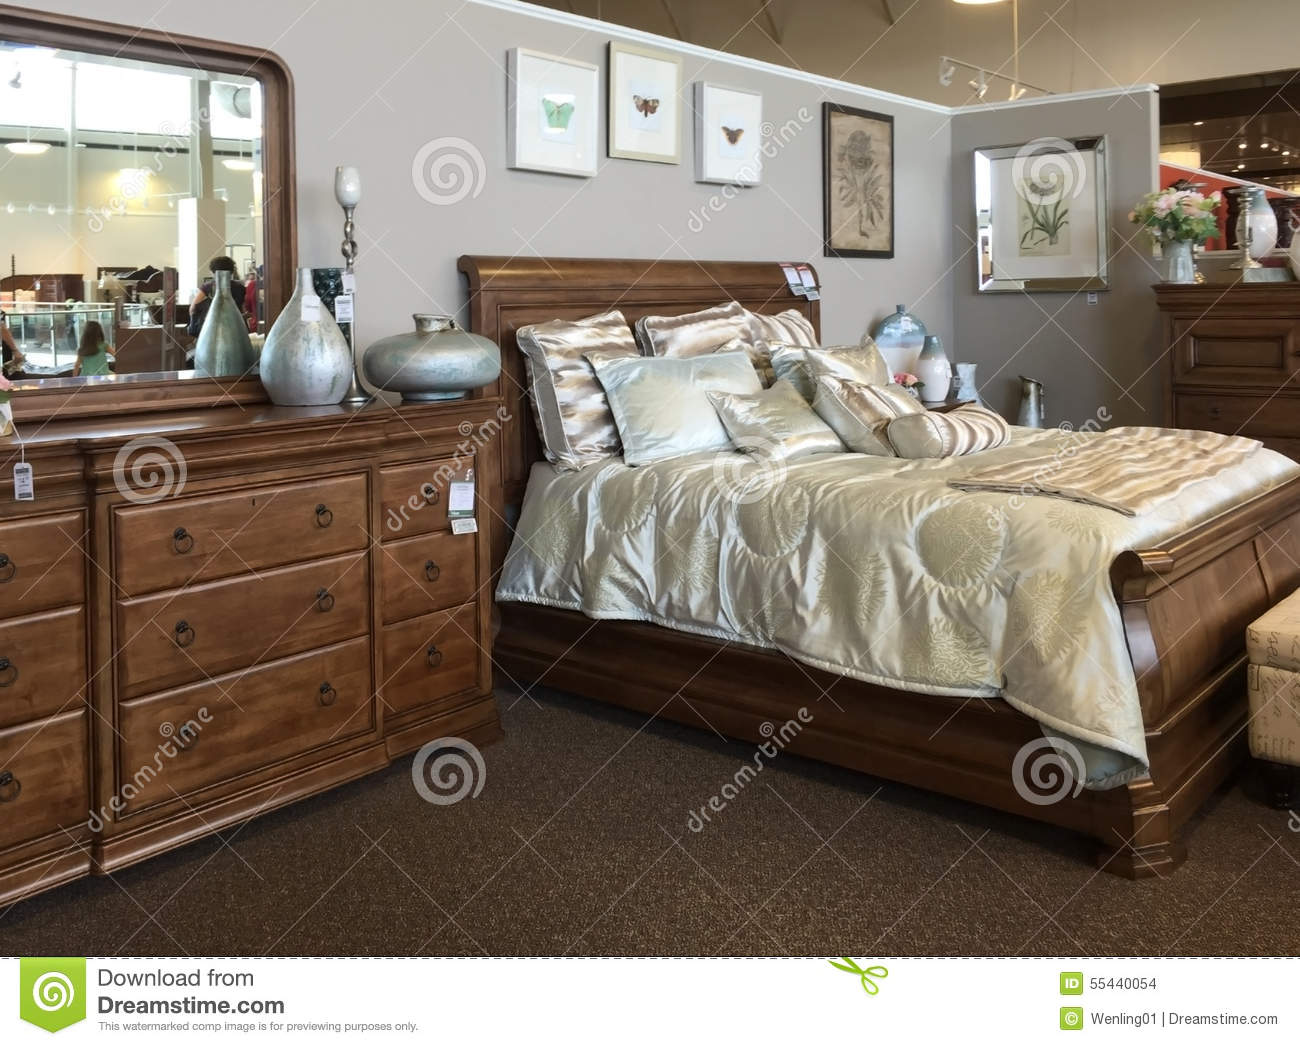 Bedroom furniture selling editorial stock image image for Best place to sell furniture online